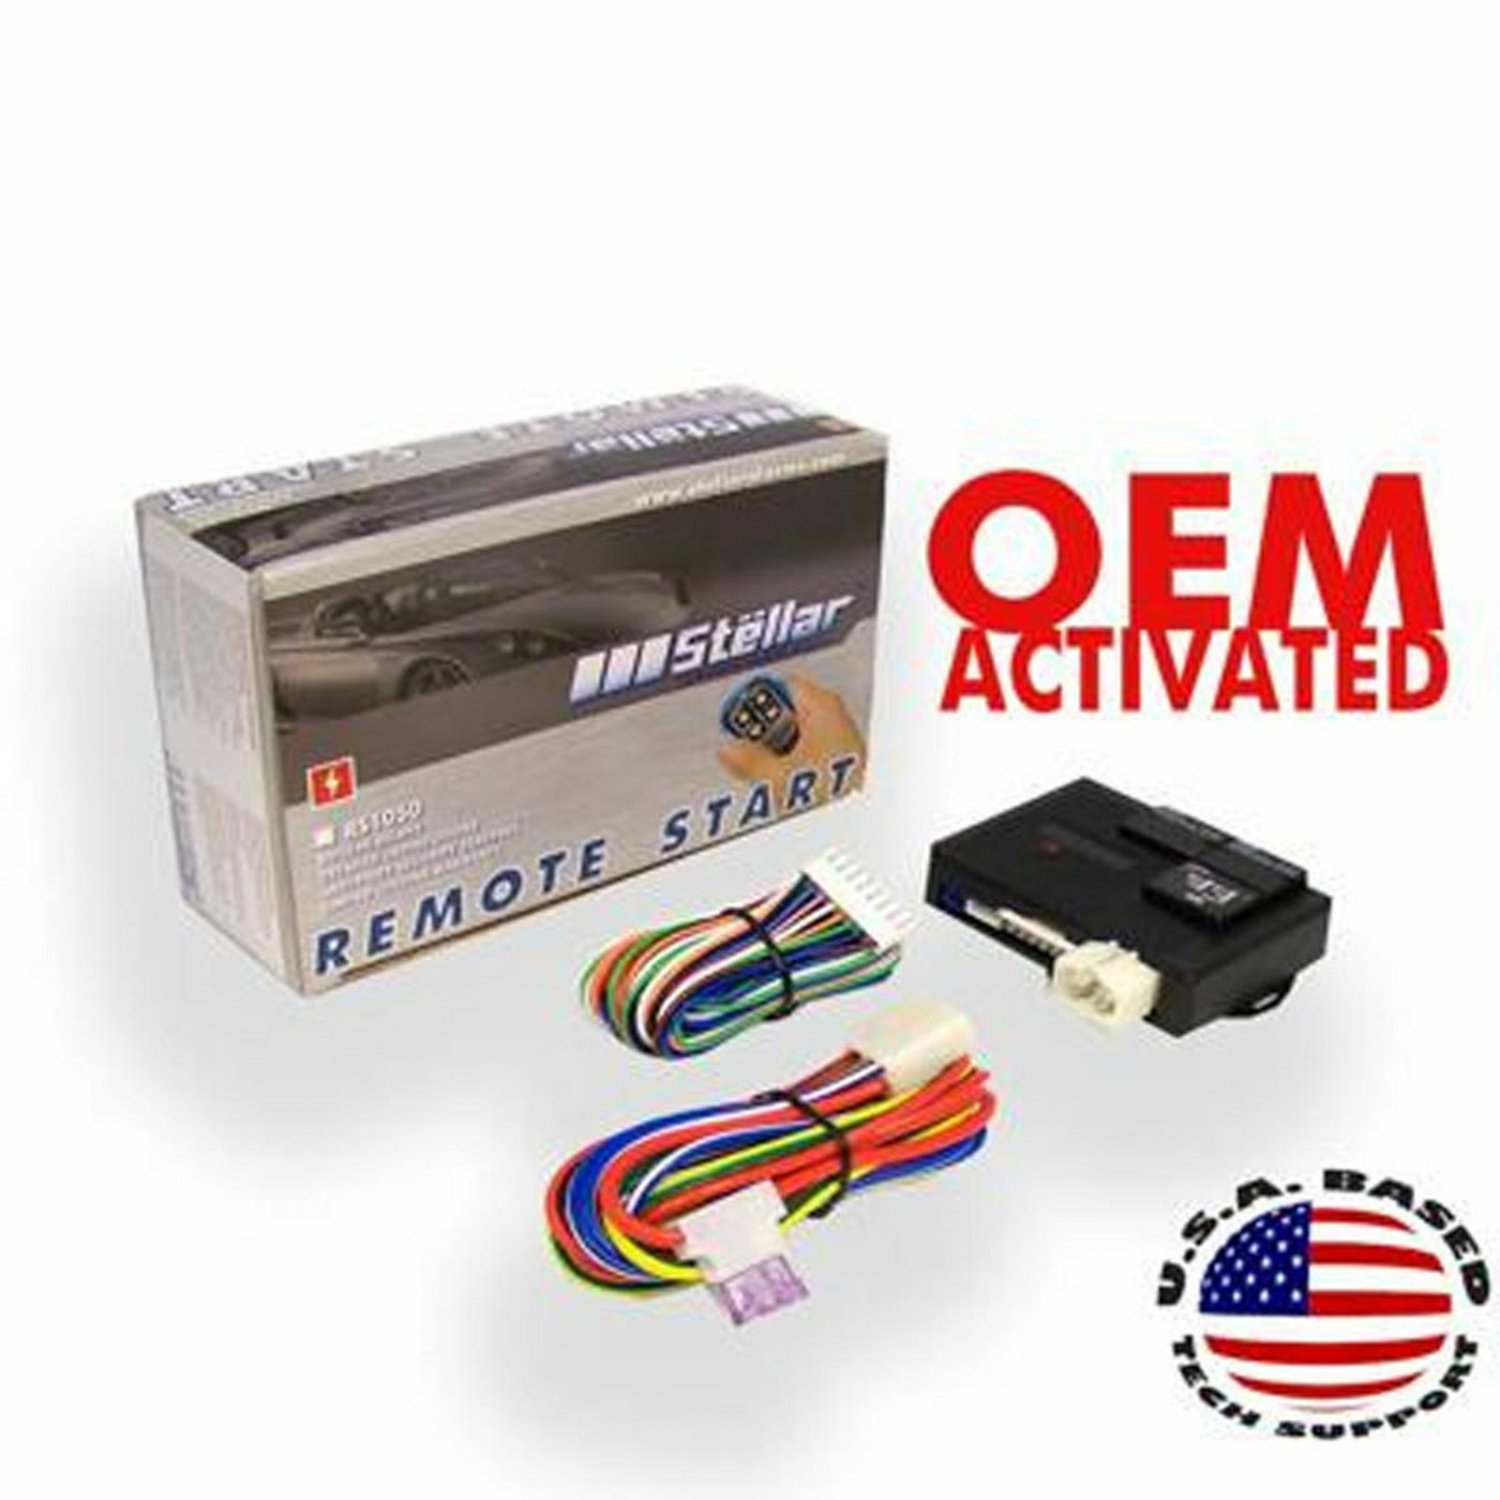 Wiring Remote Start F250 Library Add On For 2006 Ford F 250 Super Duty Factory Keyless Entry